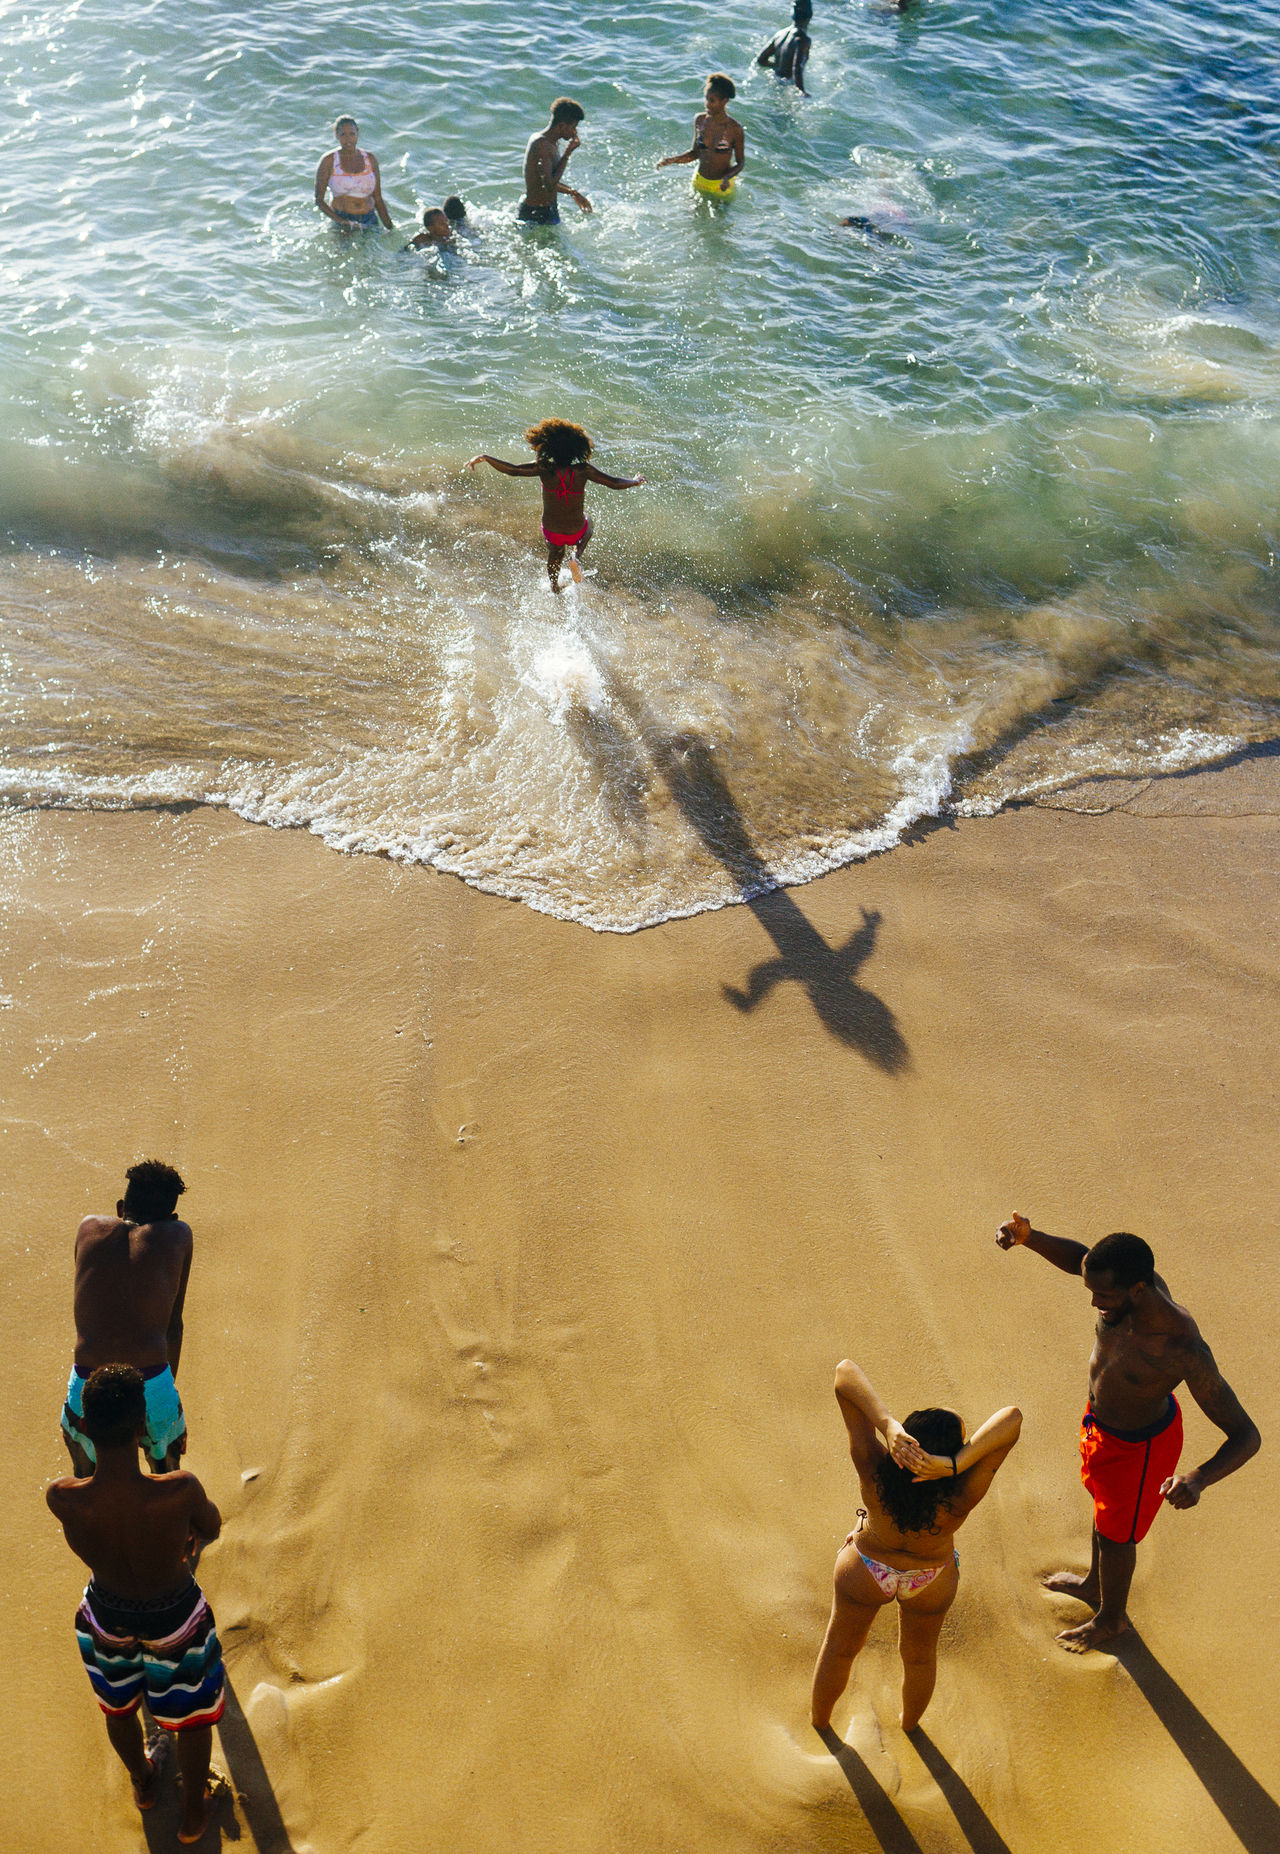 A girl runs towards the water to cool off Beach Day Happiness High Angle View Kid Running Kids Being Kids Leisure Activity Lifestyles Live For The Story Outdoors People Real People Sand Sea Standing Swimming The Street Photographer - 2017 EyeEm Awards Water